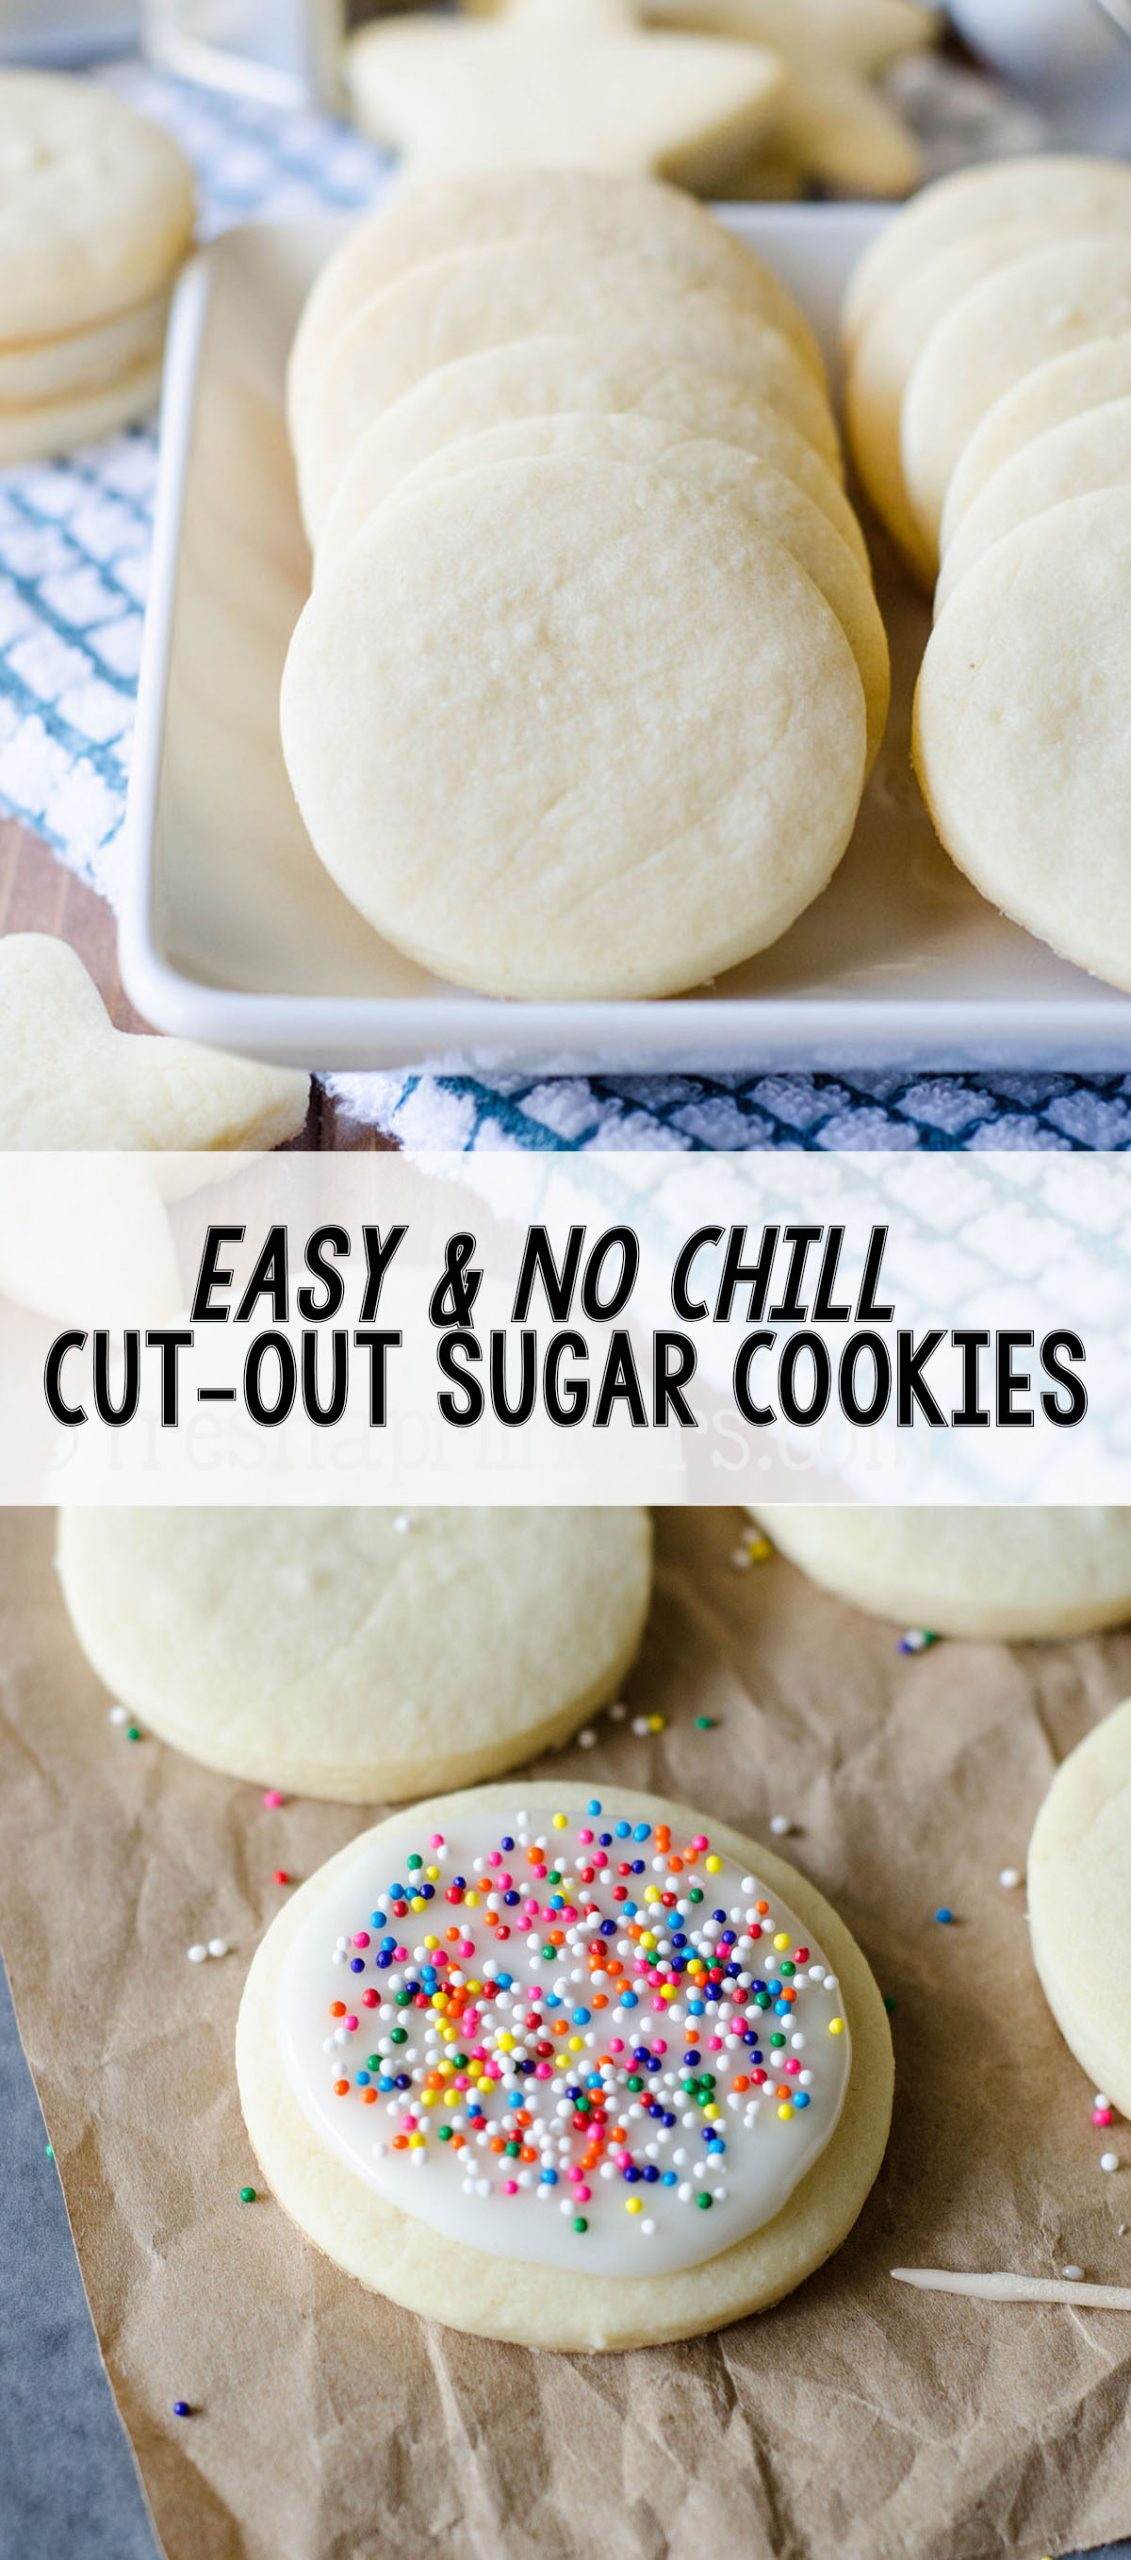 No dough chilling necessary for these soft cut-out sugar cookies that are perfect for decorating with icing and sprinkles. Crisp edges, soft centers, and completely customizable in flavor and shape!